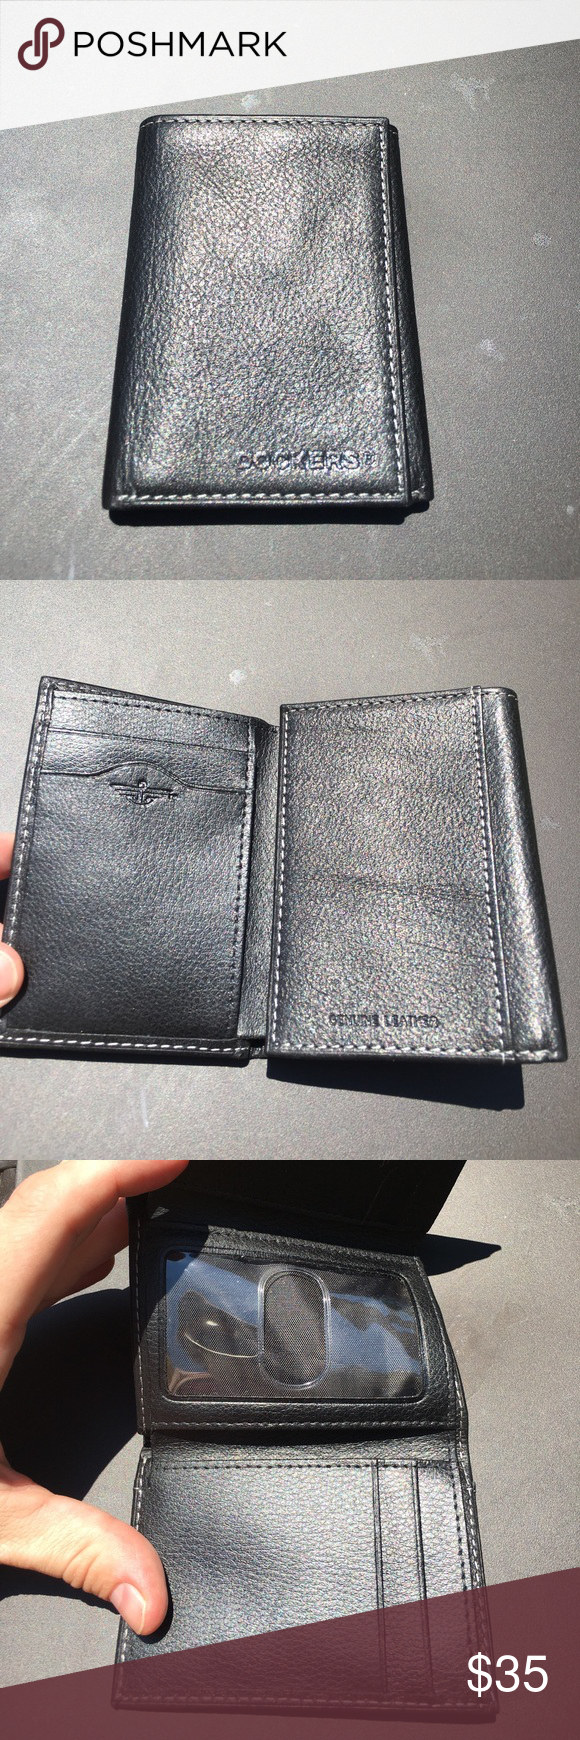 Brand new Dockers wallet, genuine leather Brand new